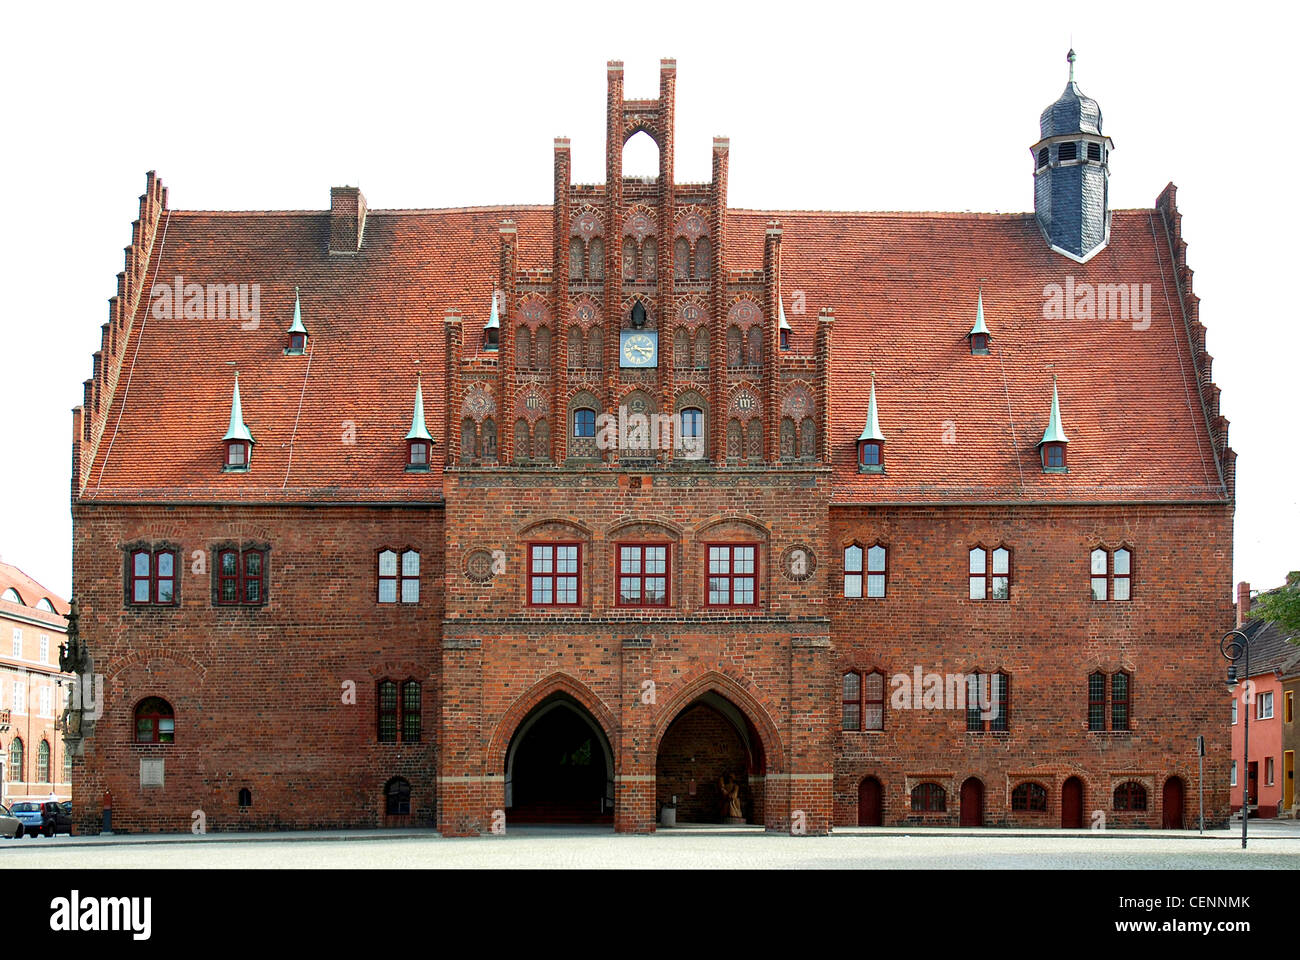 City hall of the Brandenburg city of Jueterbog. - Stock Image